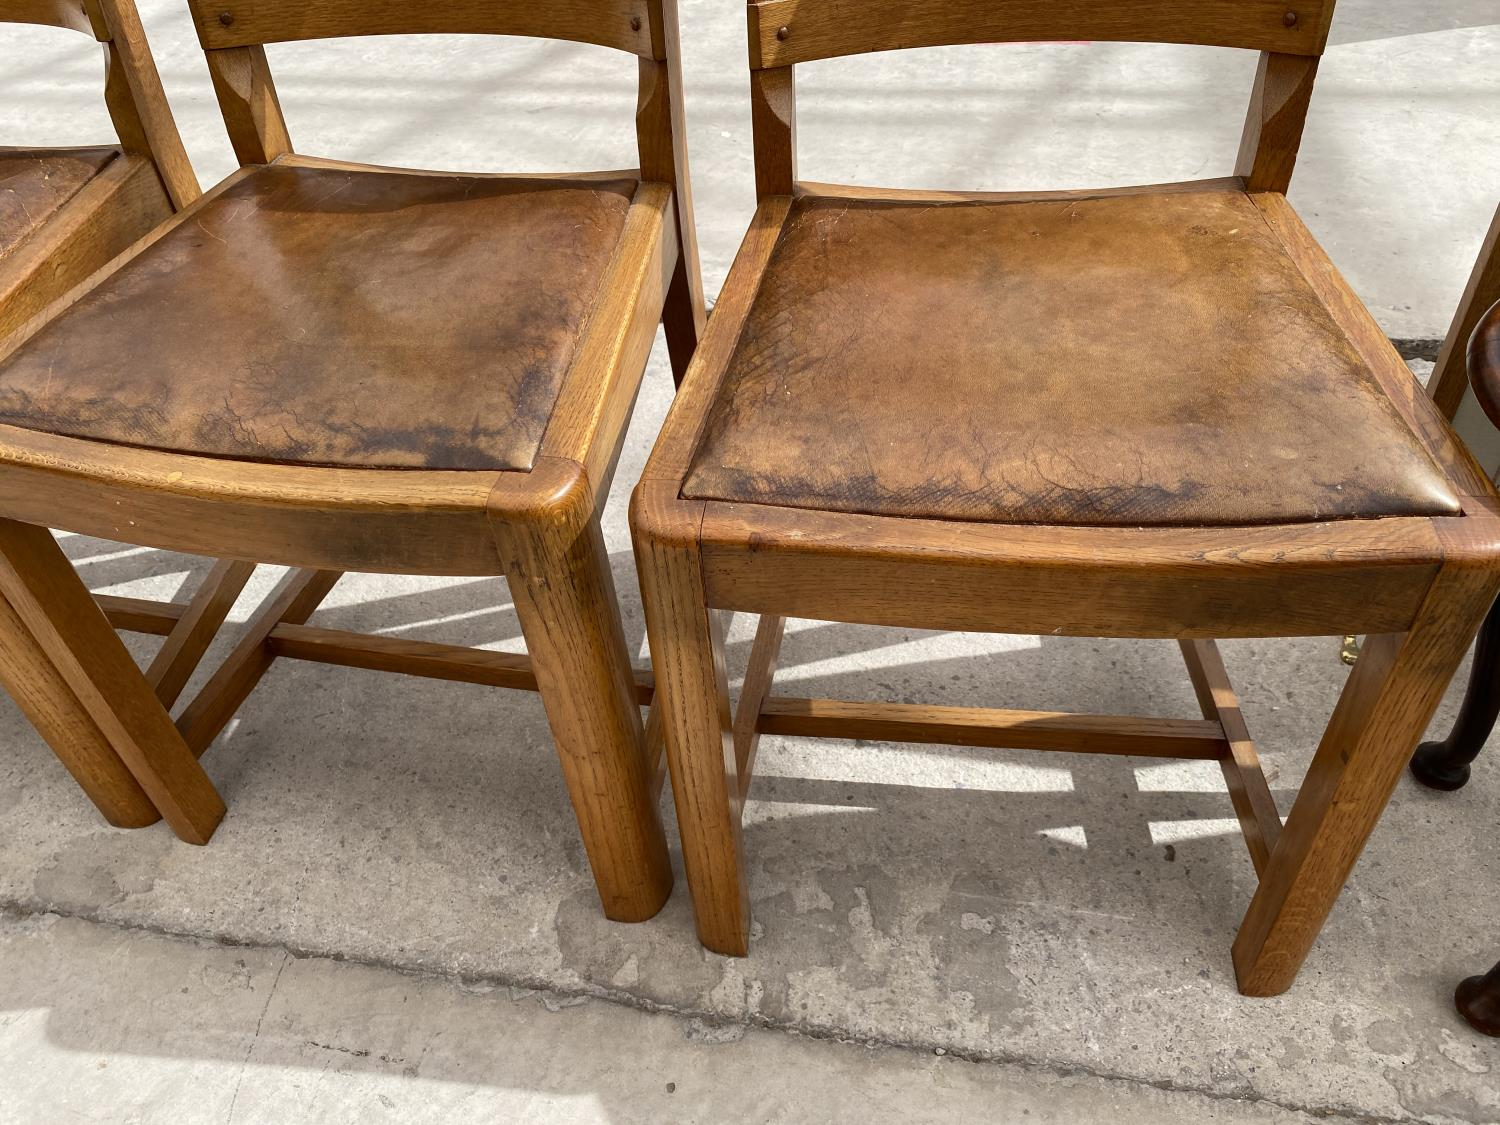 A SET OF MID 20TH CENTURY OAK DINING CHAIRS - Image 3 of 5